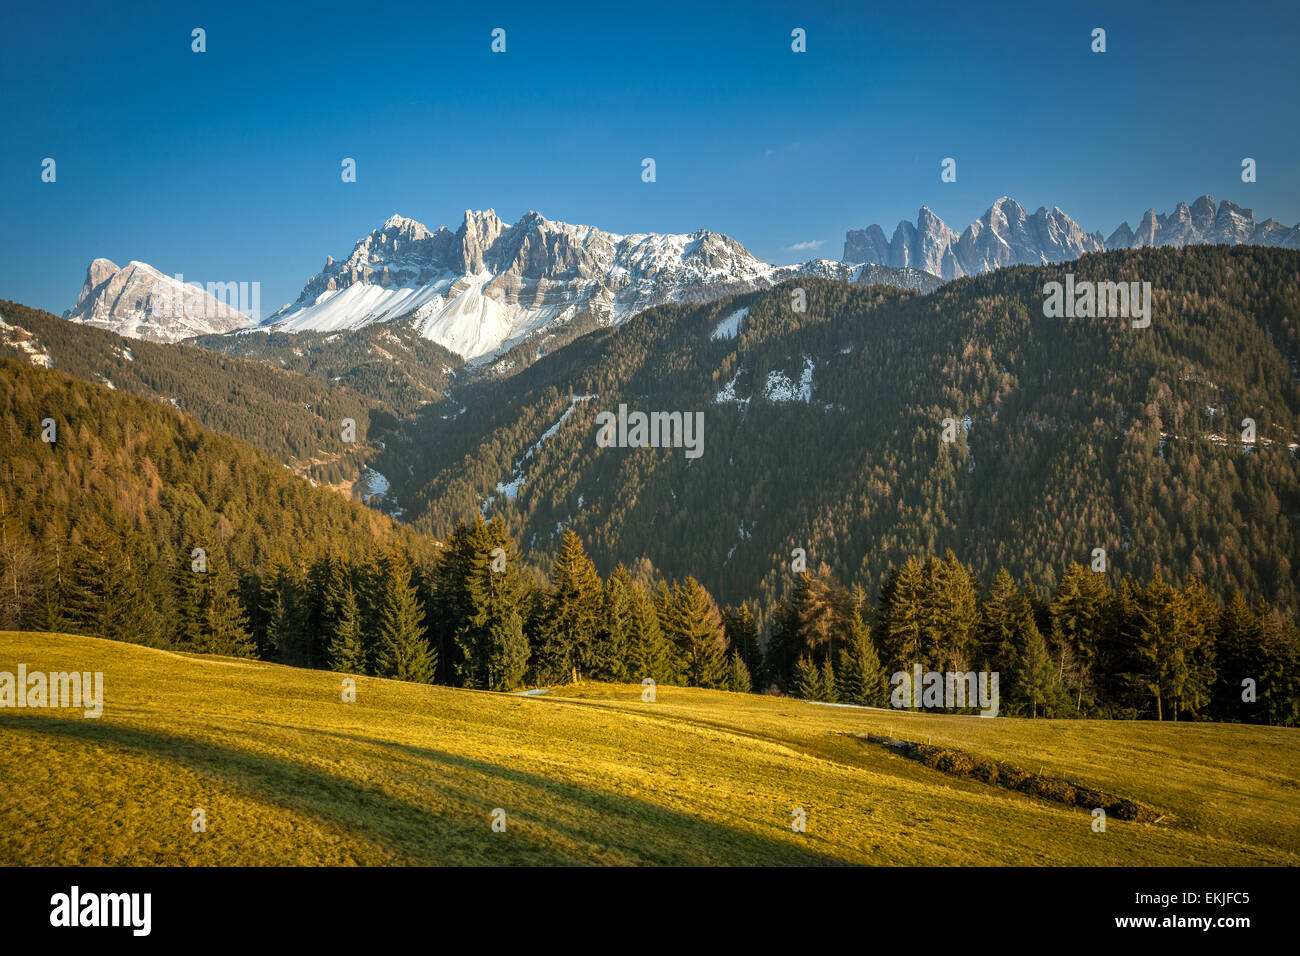 Dolomites (Dolomiti) alps viewed from Passo delle Erbe, in South Tyrol, Trentino Alto Adige, Norther Italy - Stock Image